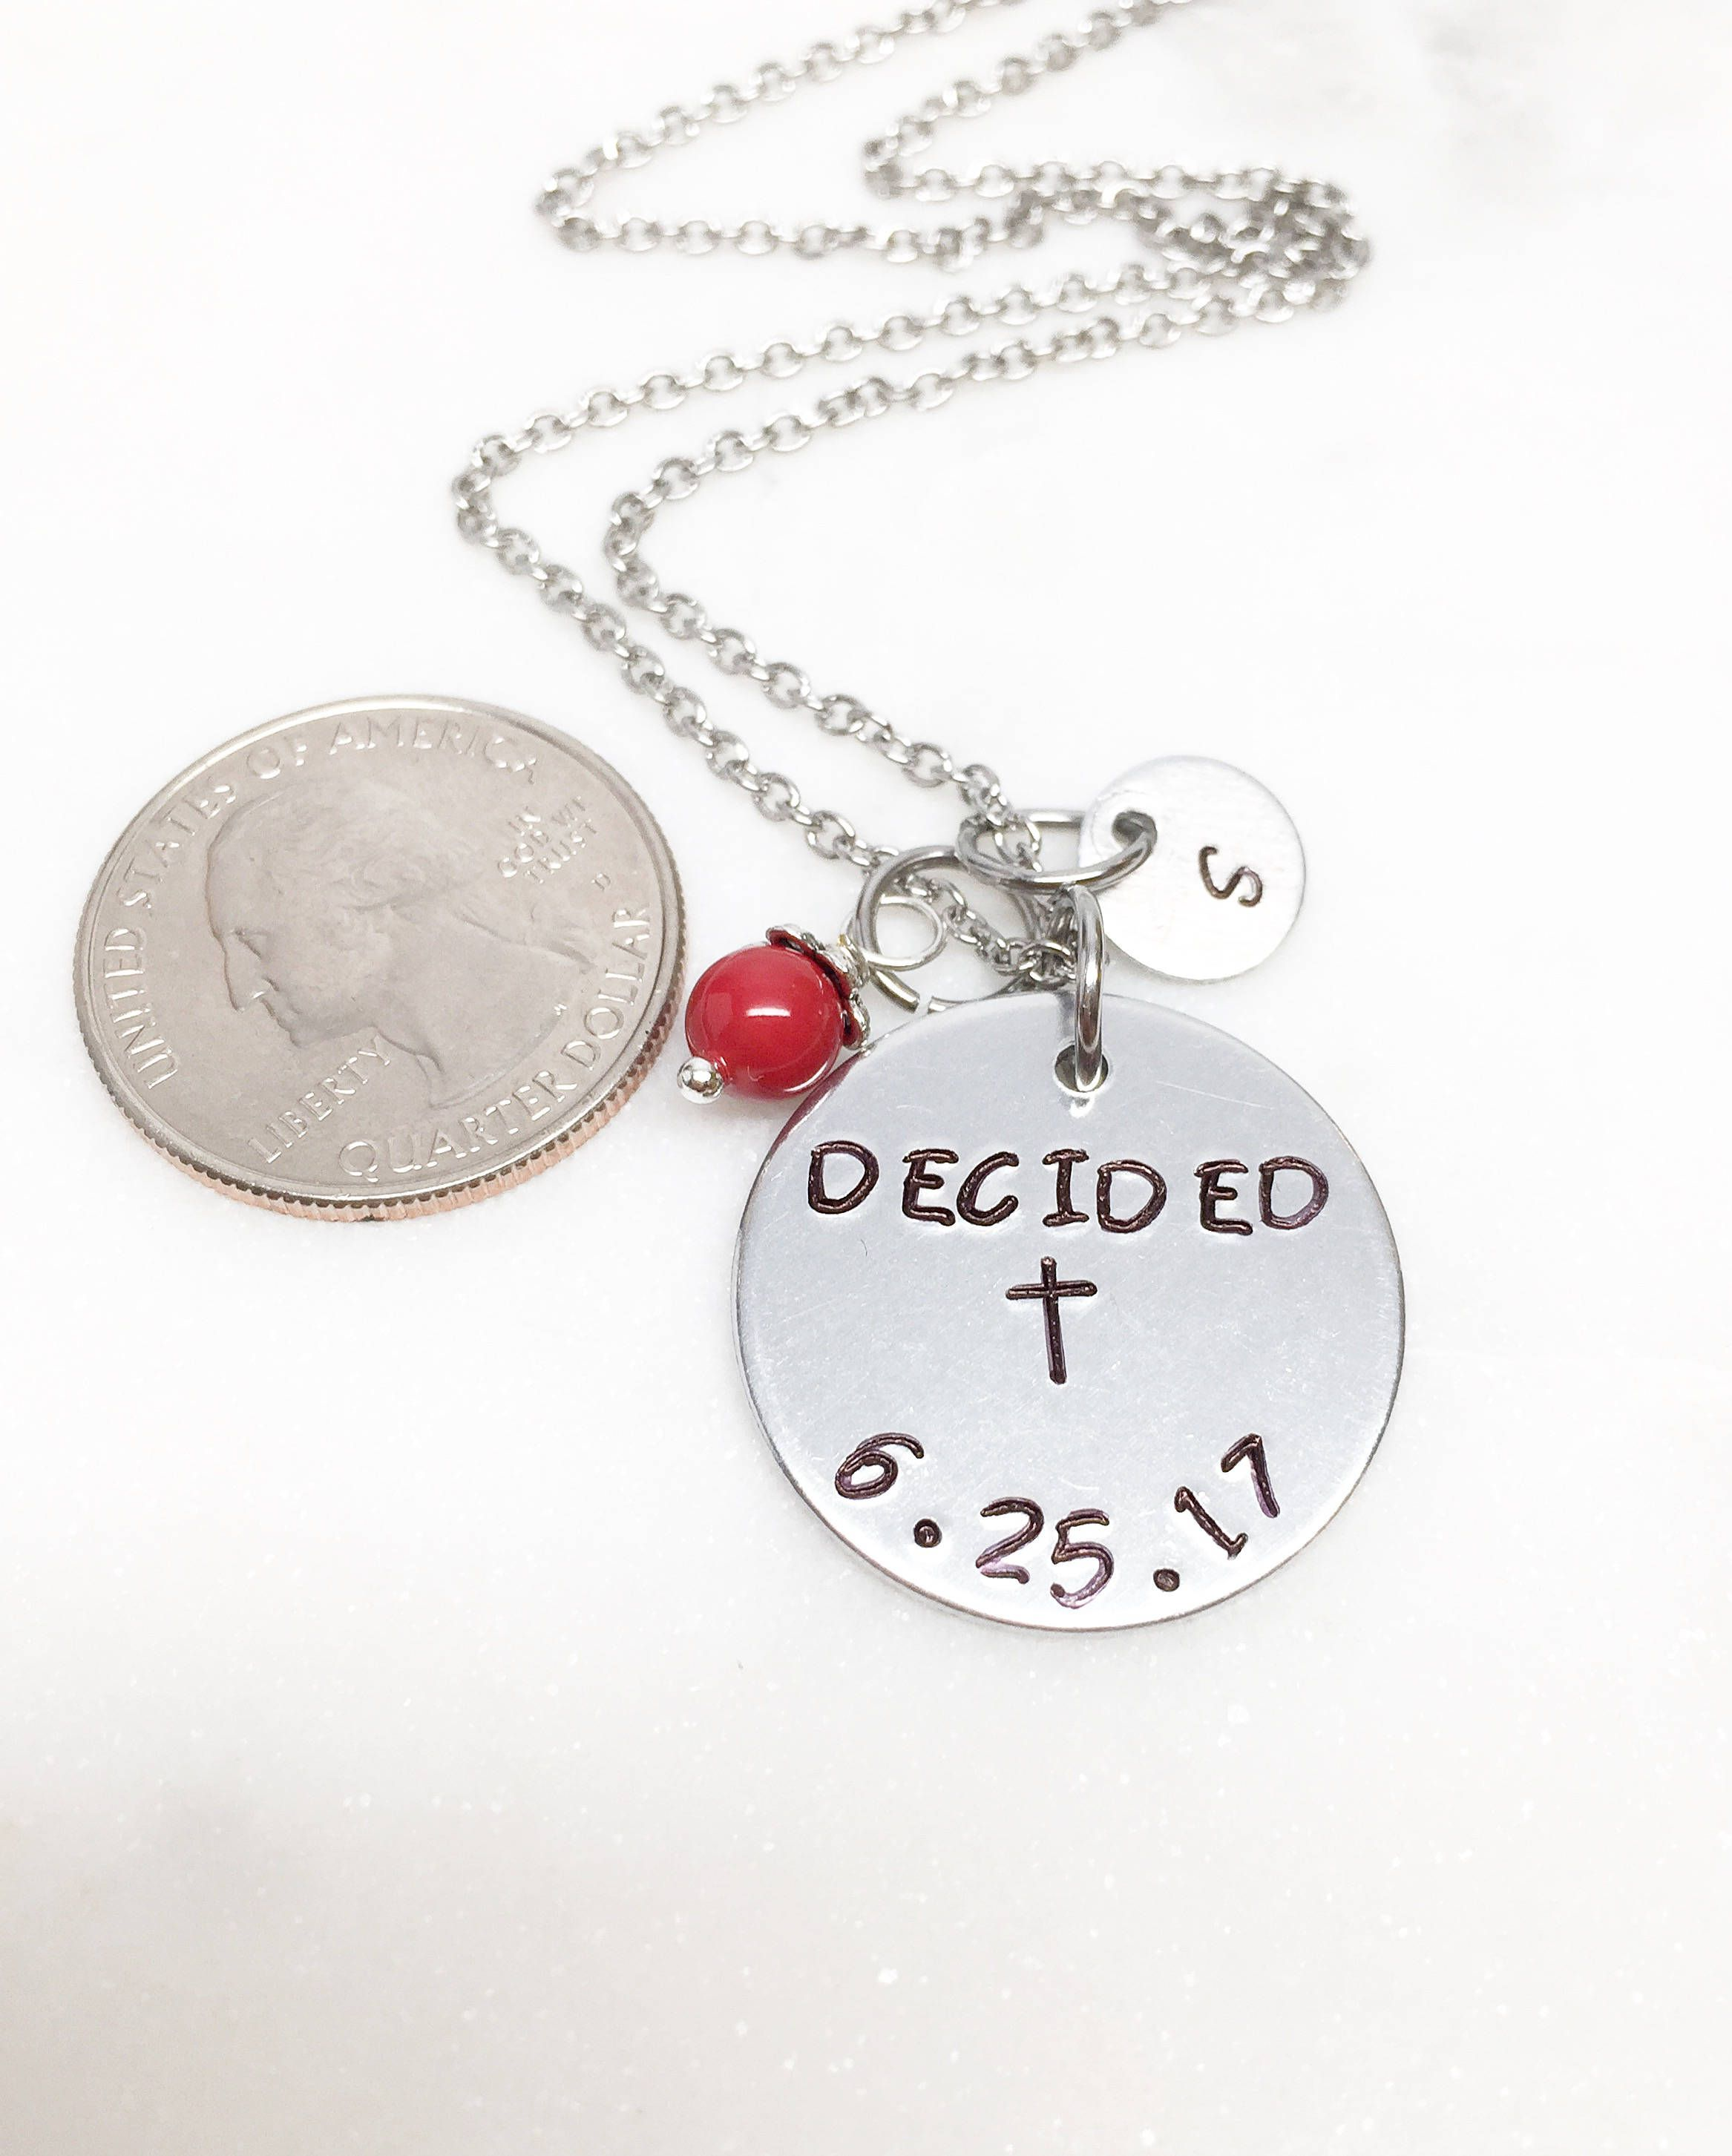 baptism in products necklace gift bible baptized christian confirmation christ verse jewelry